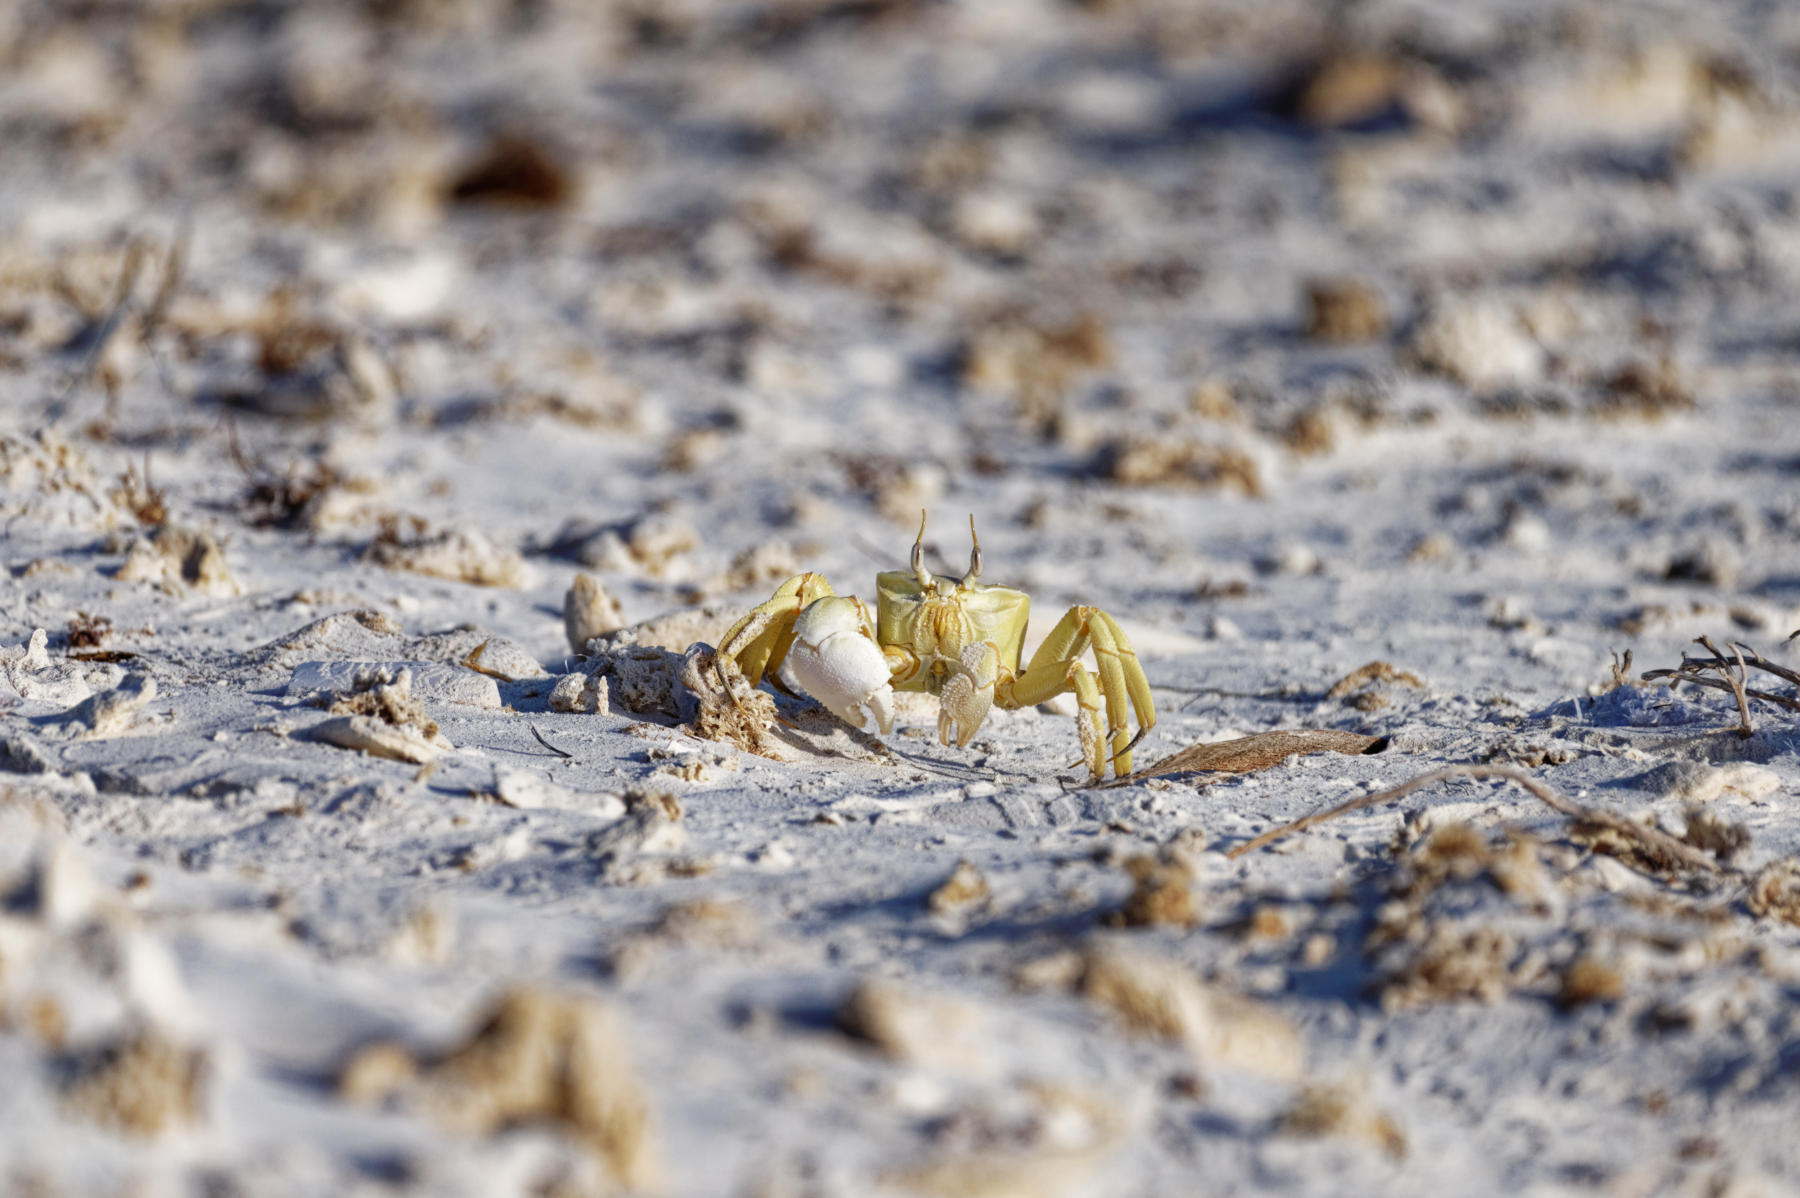 Beach crab, Bar Al Hikman, Oman